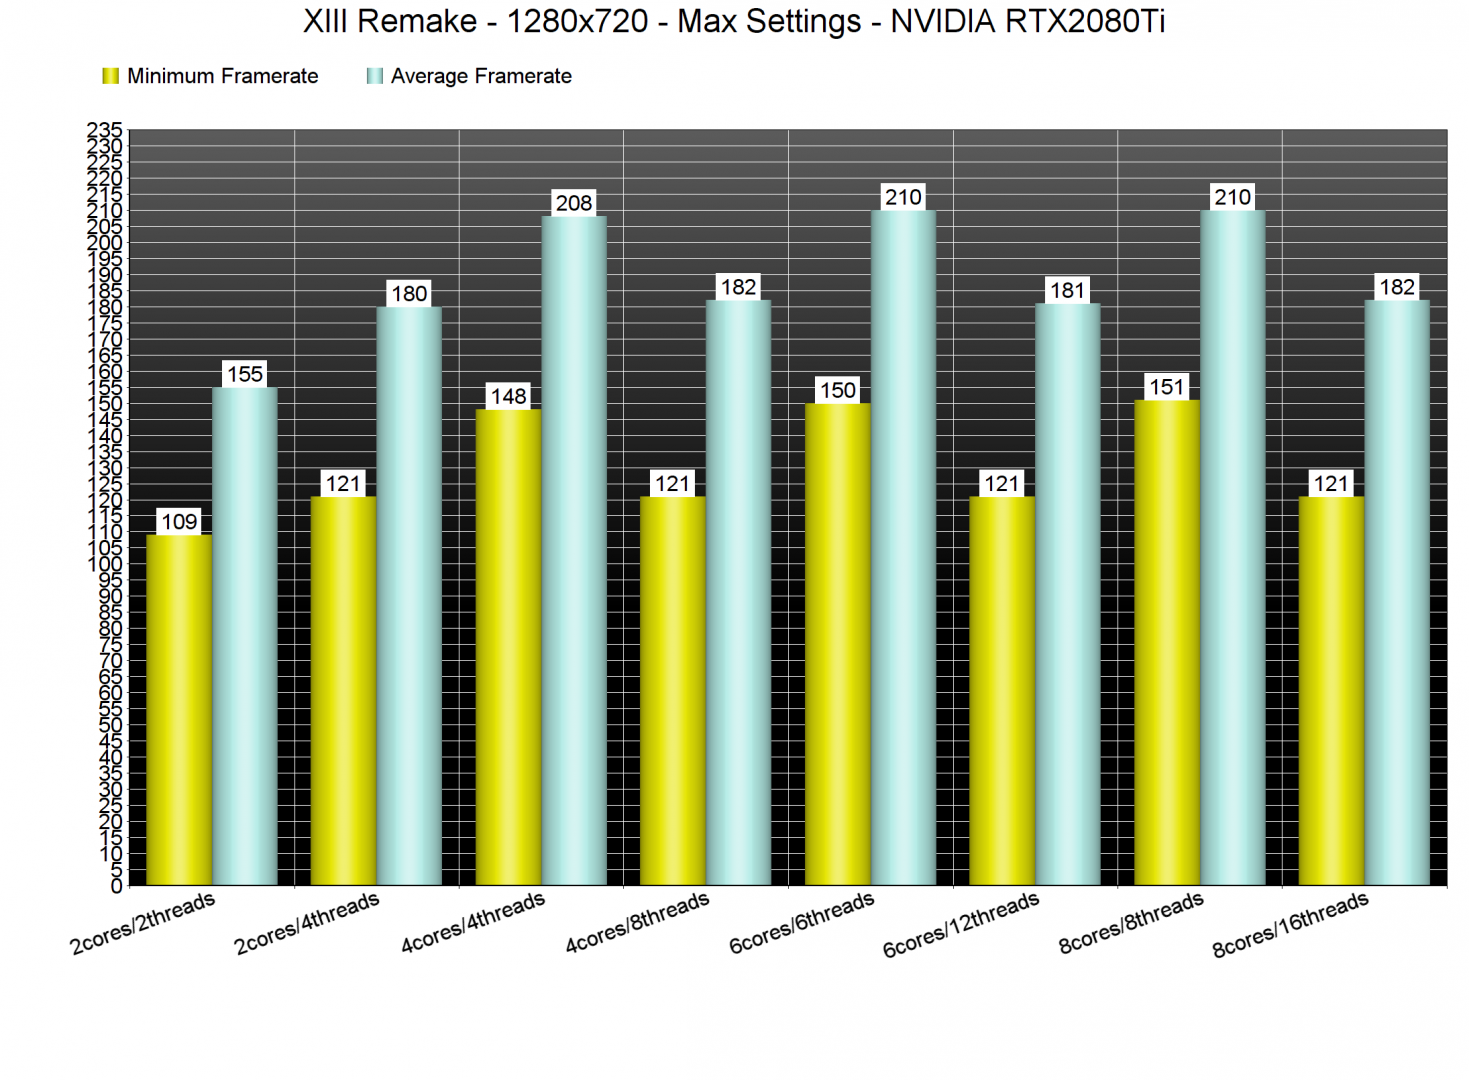 XIII Remake CPU benchmarks-1